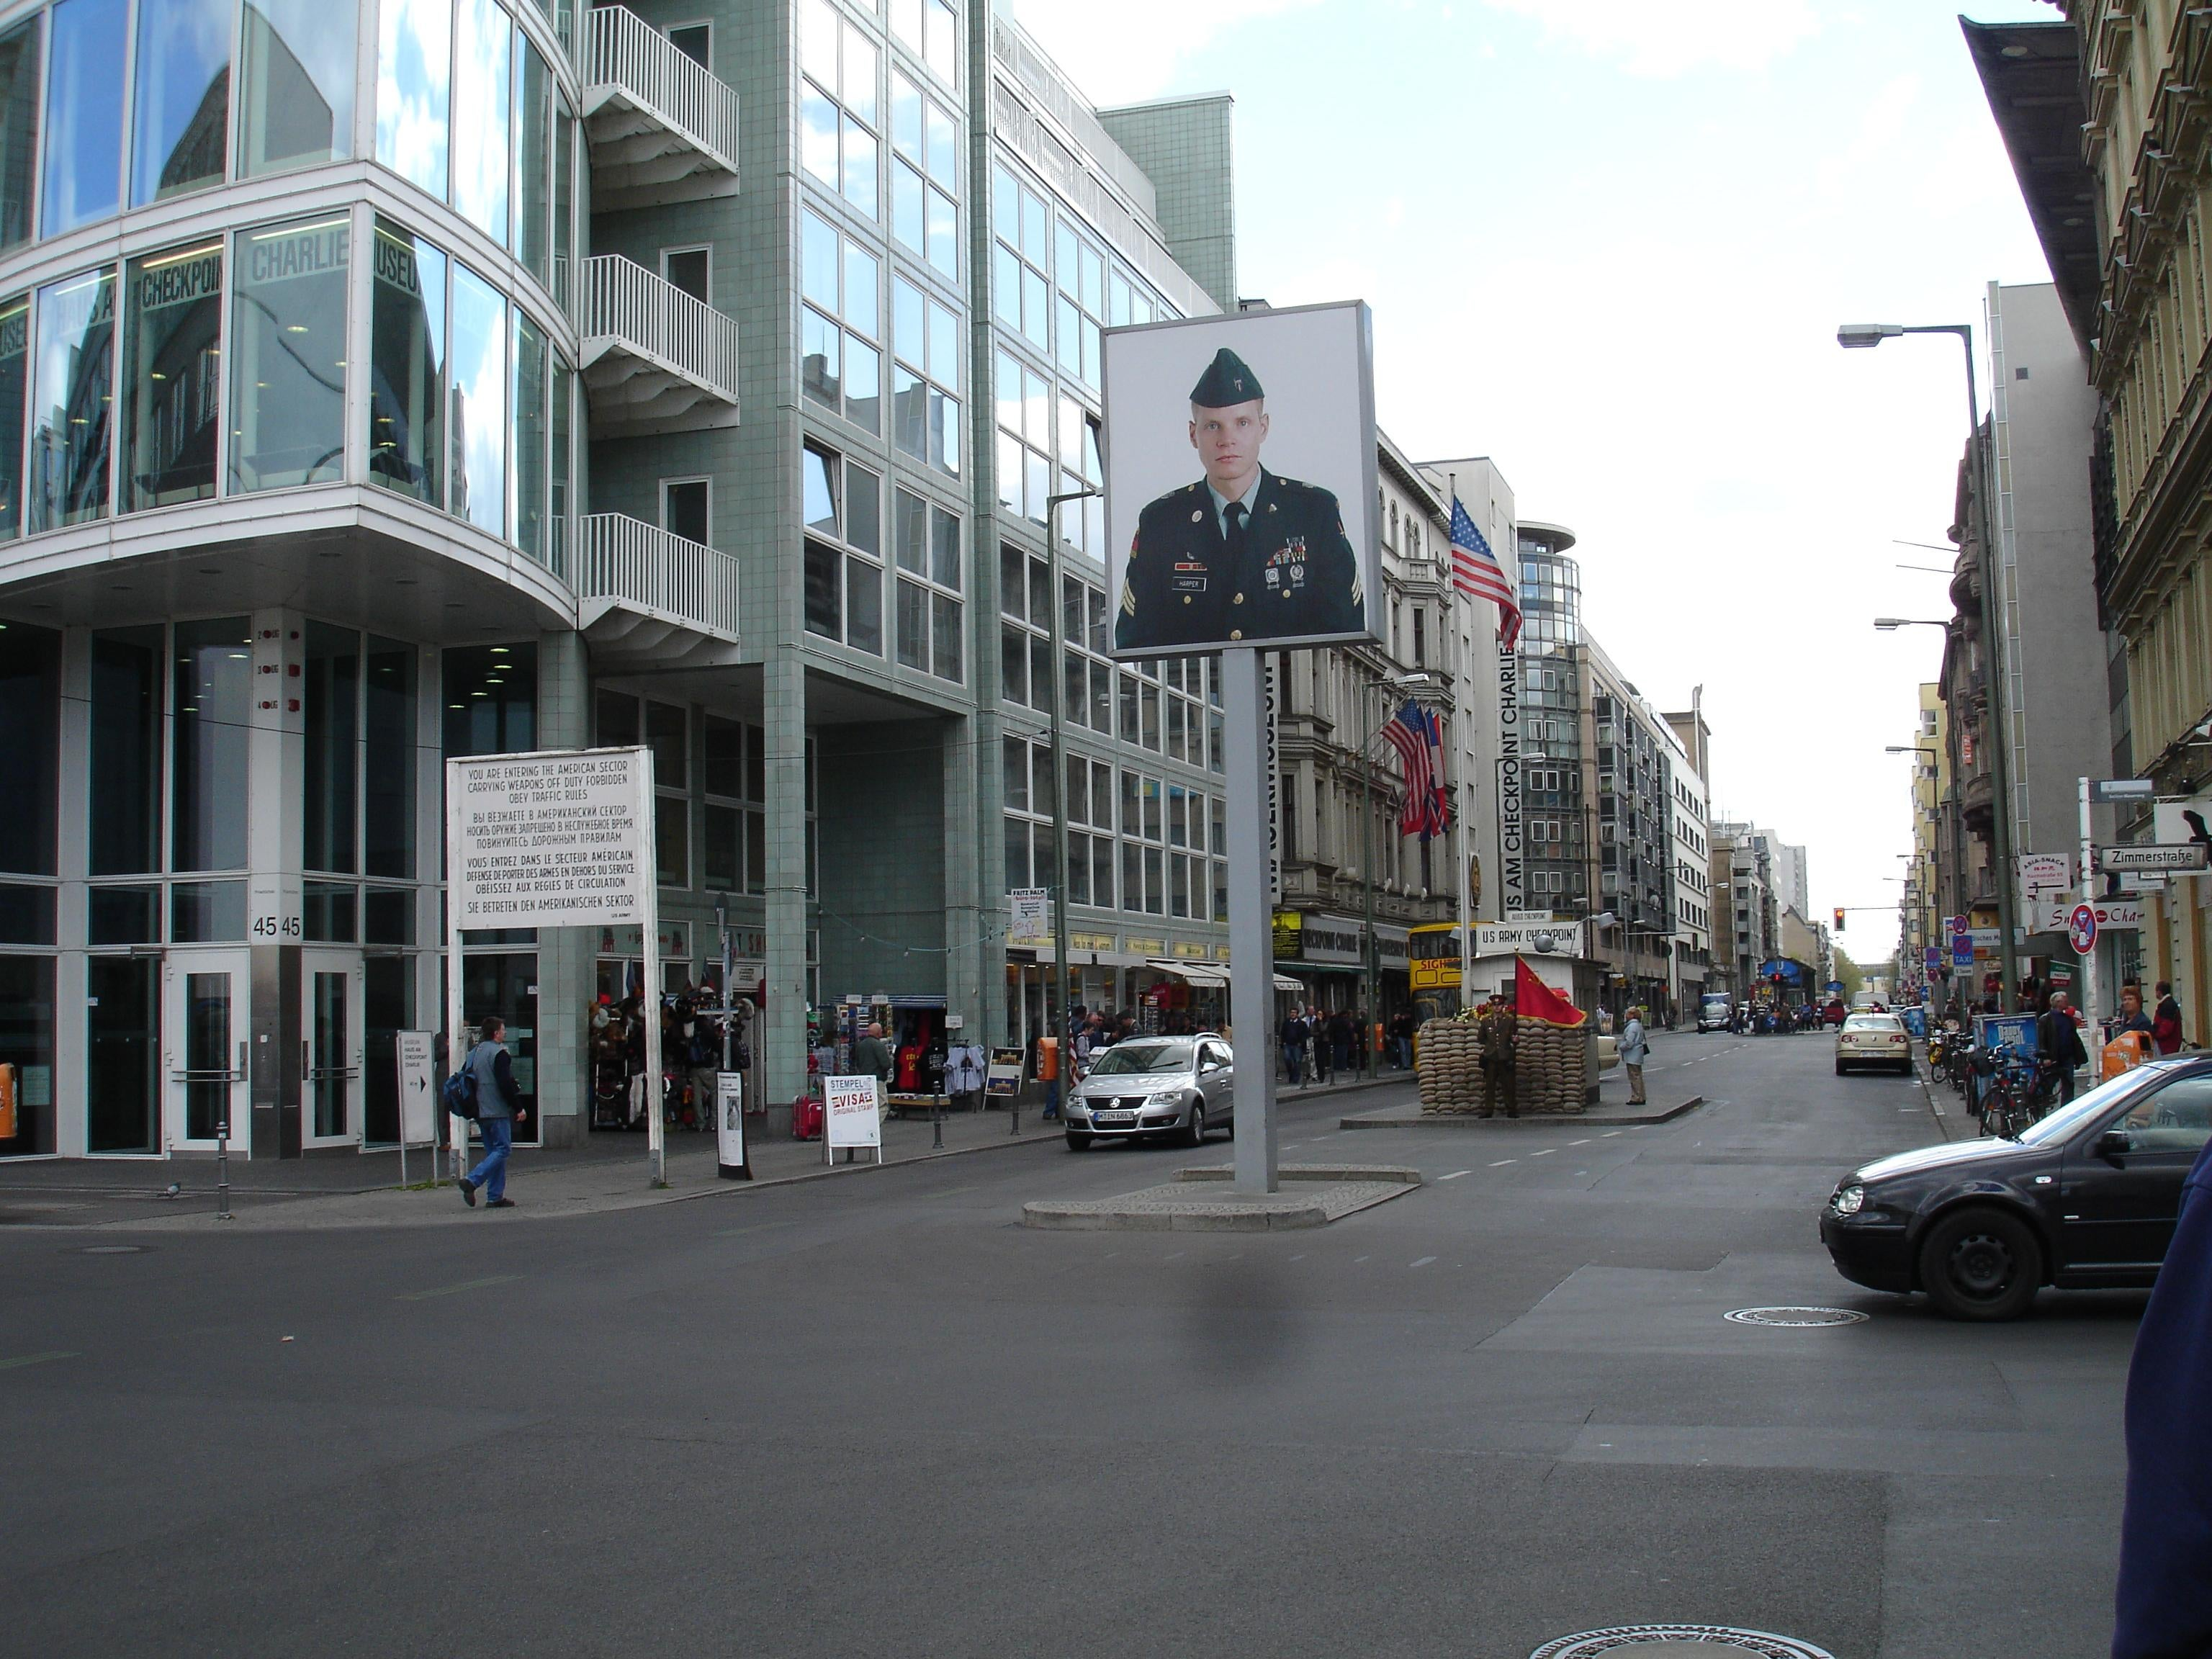 Arquitectura en Checkpoint Charlie